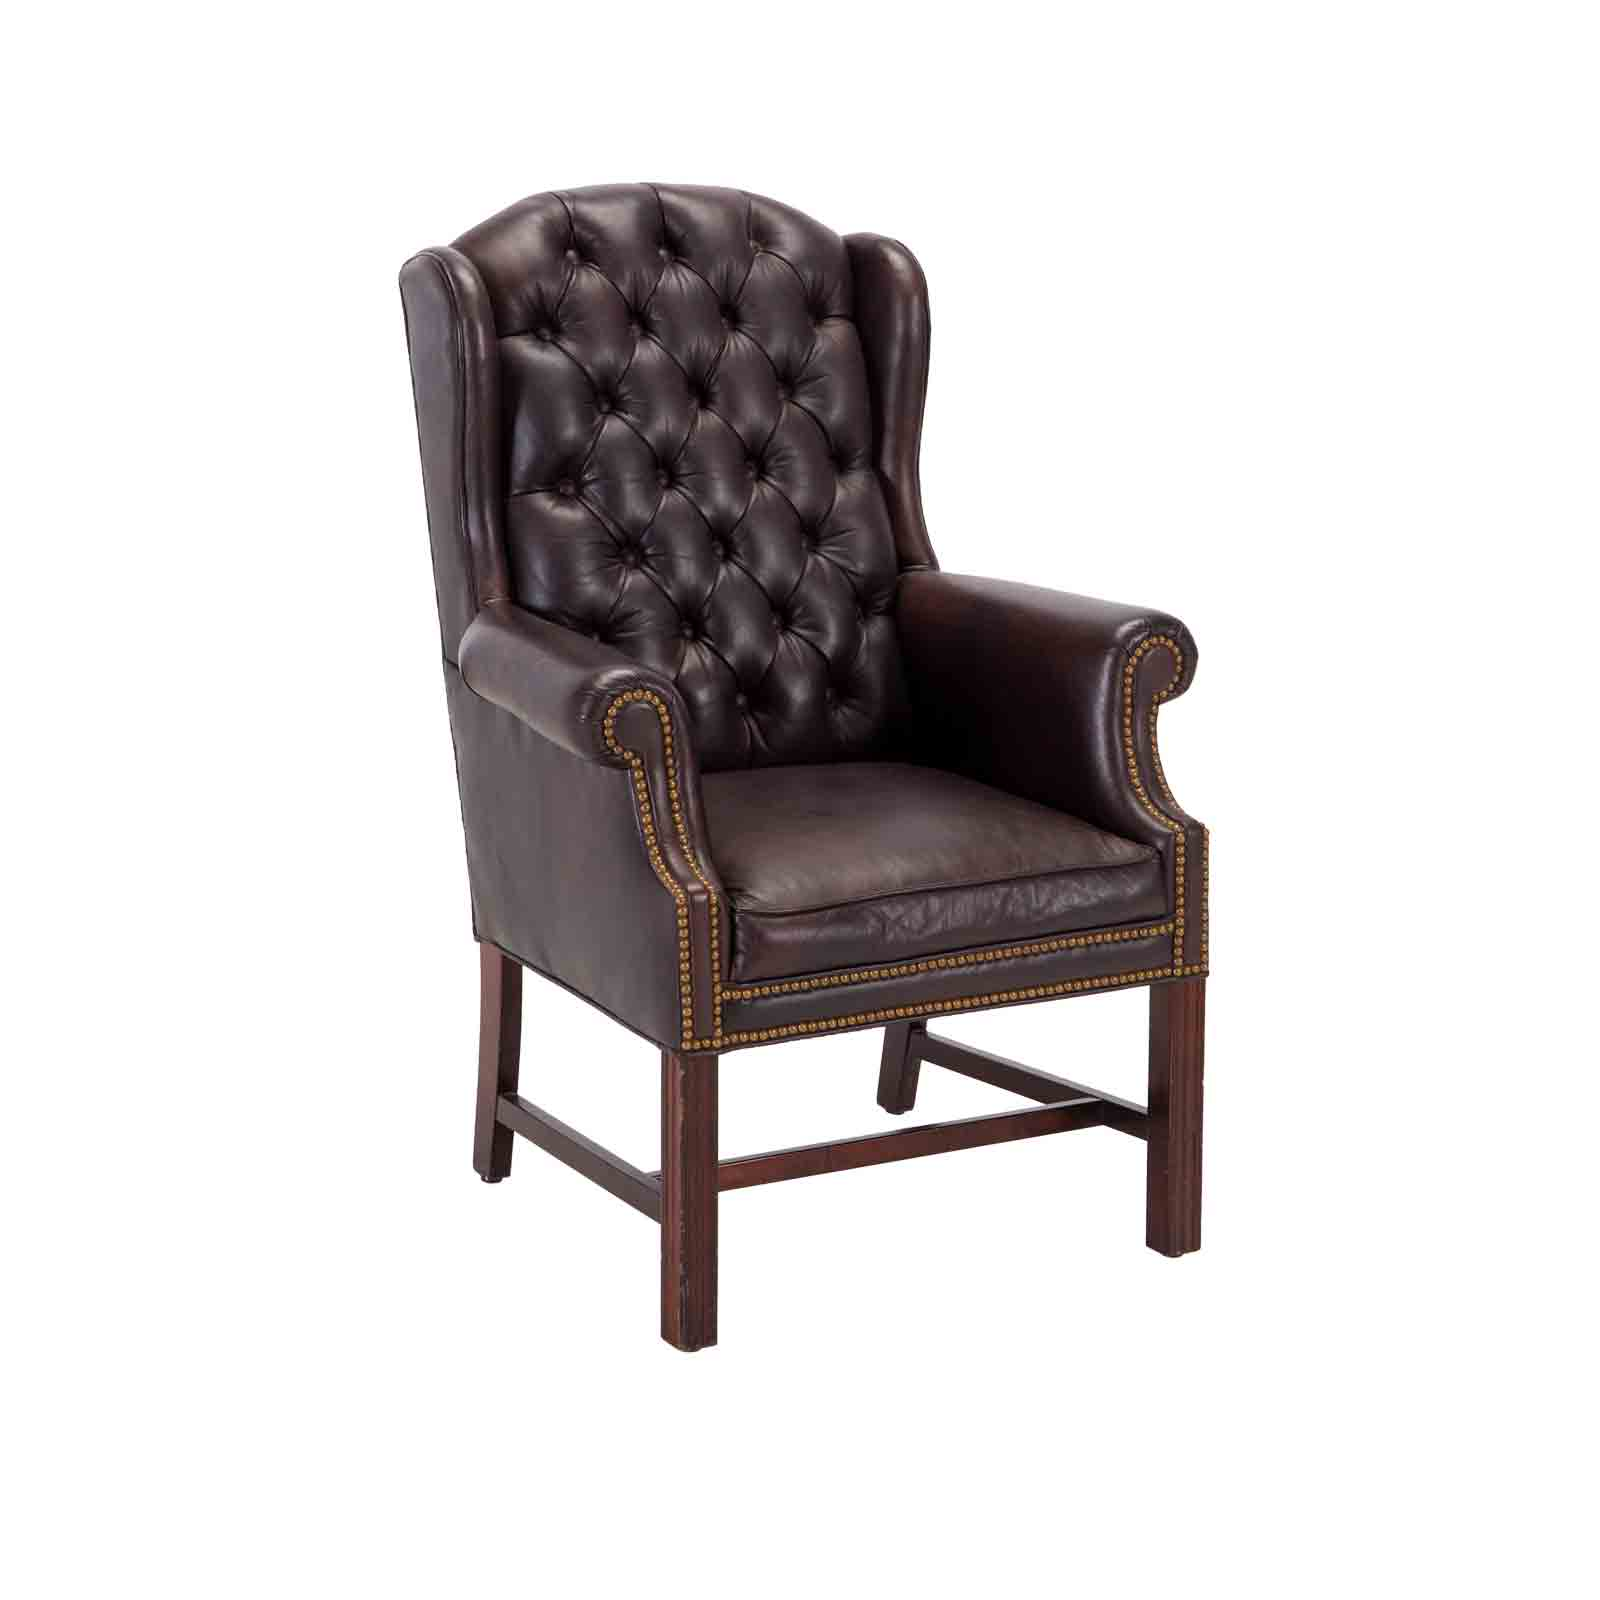 Wingback Tufted Chair Wingback Tufted Lounge Chair Brown Event Trade Show Furniture